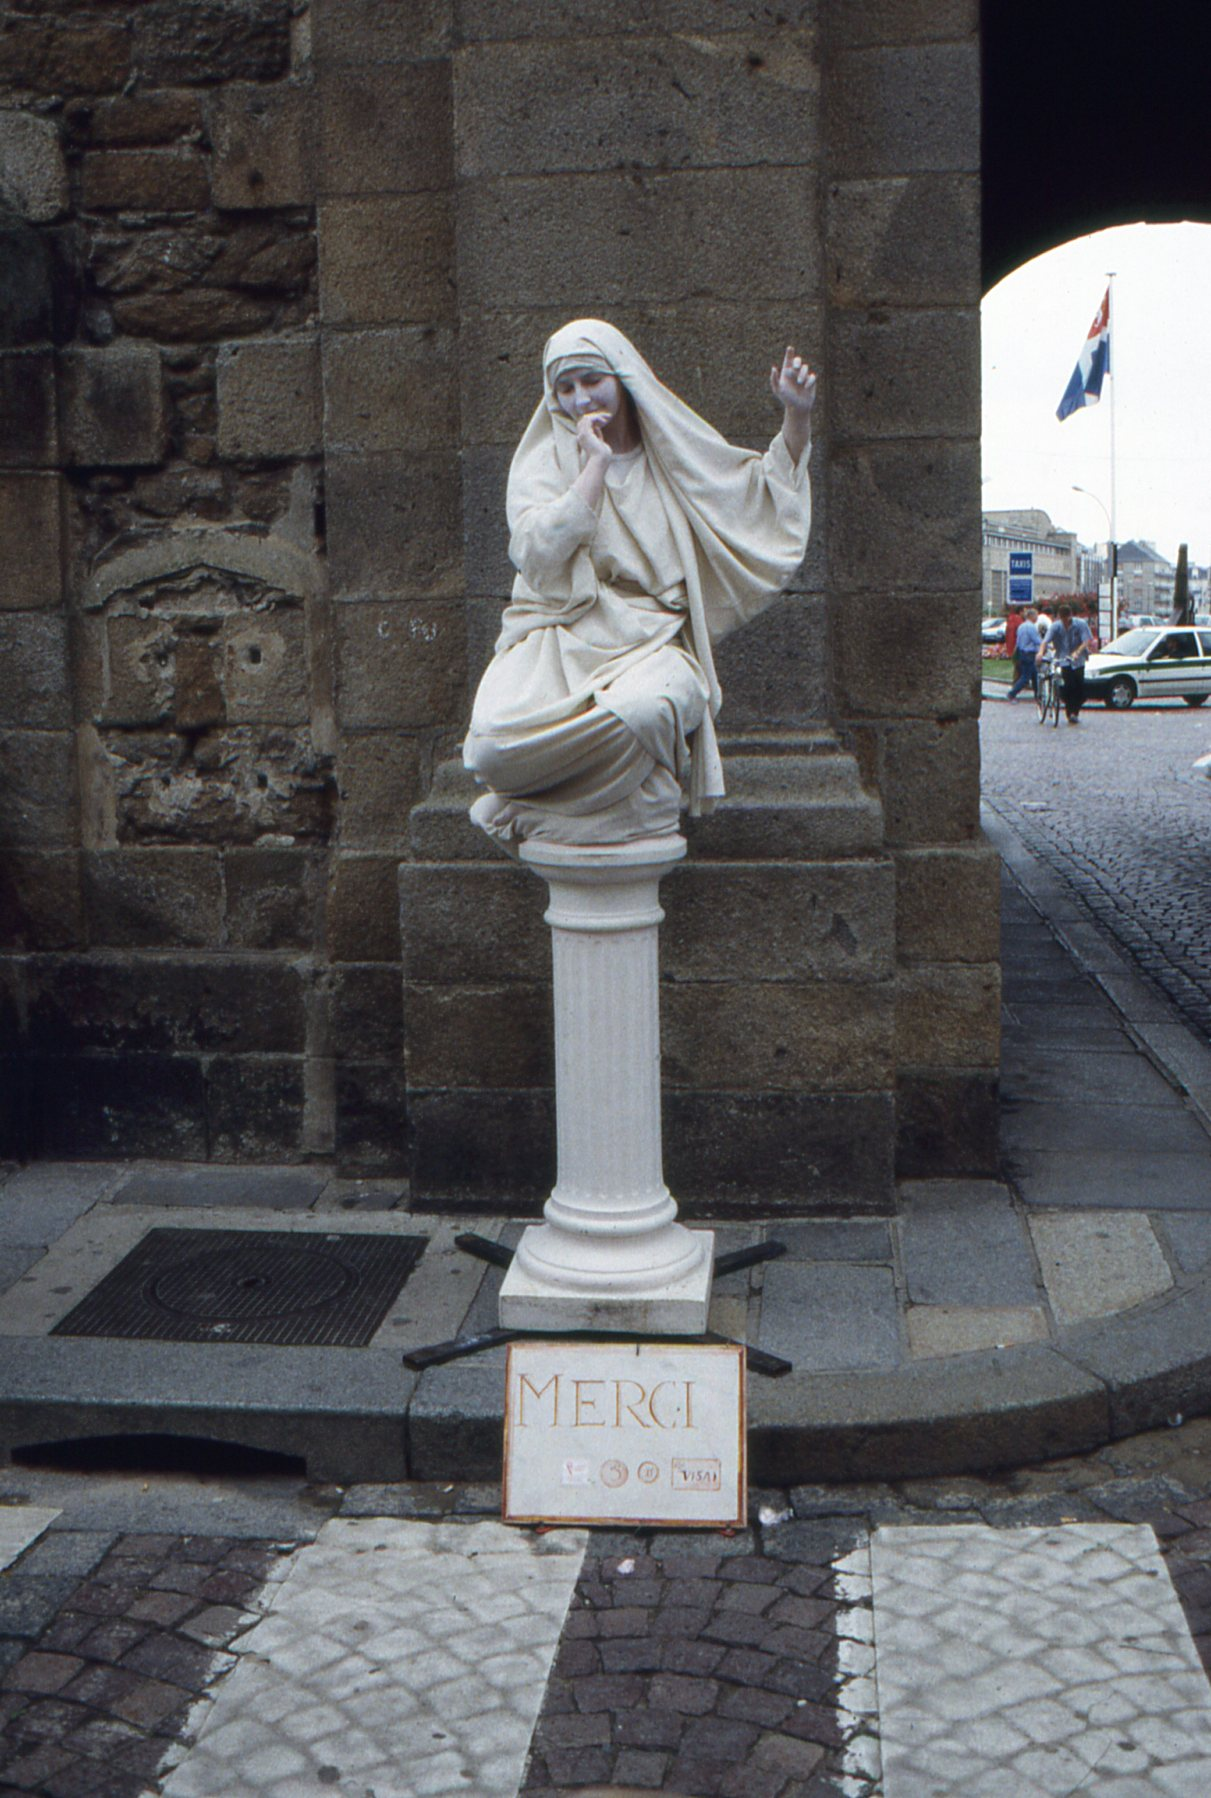 This street performer in St. Malo's main square poses quite convincingly as a marble statue and expects suitable compensation in return.